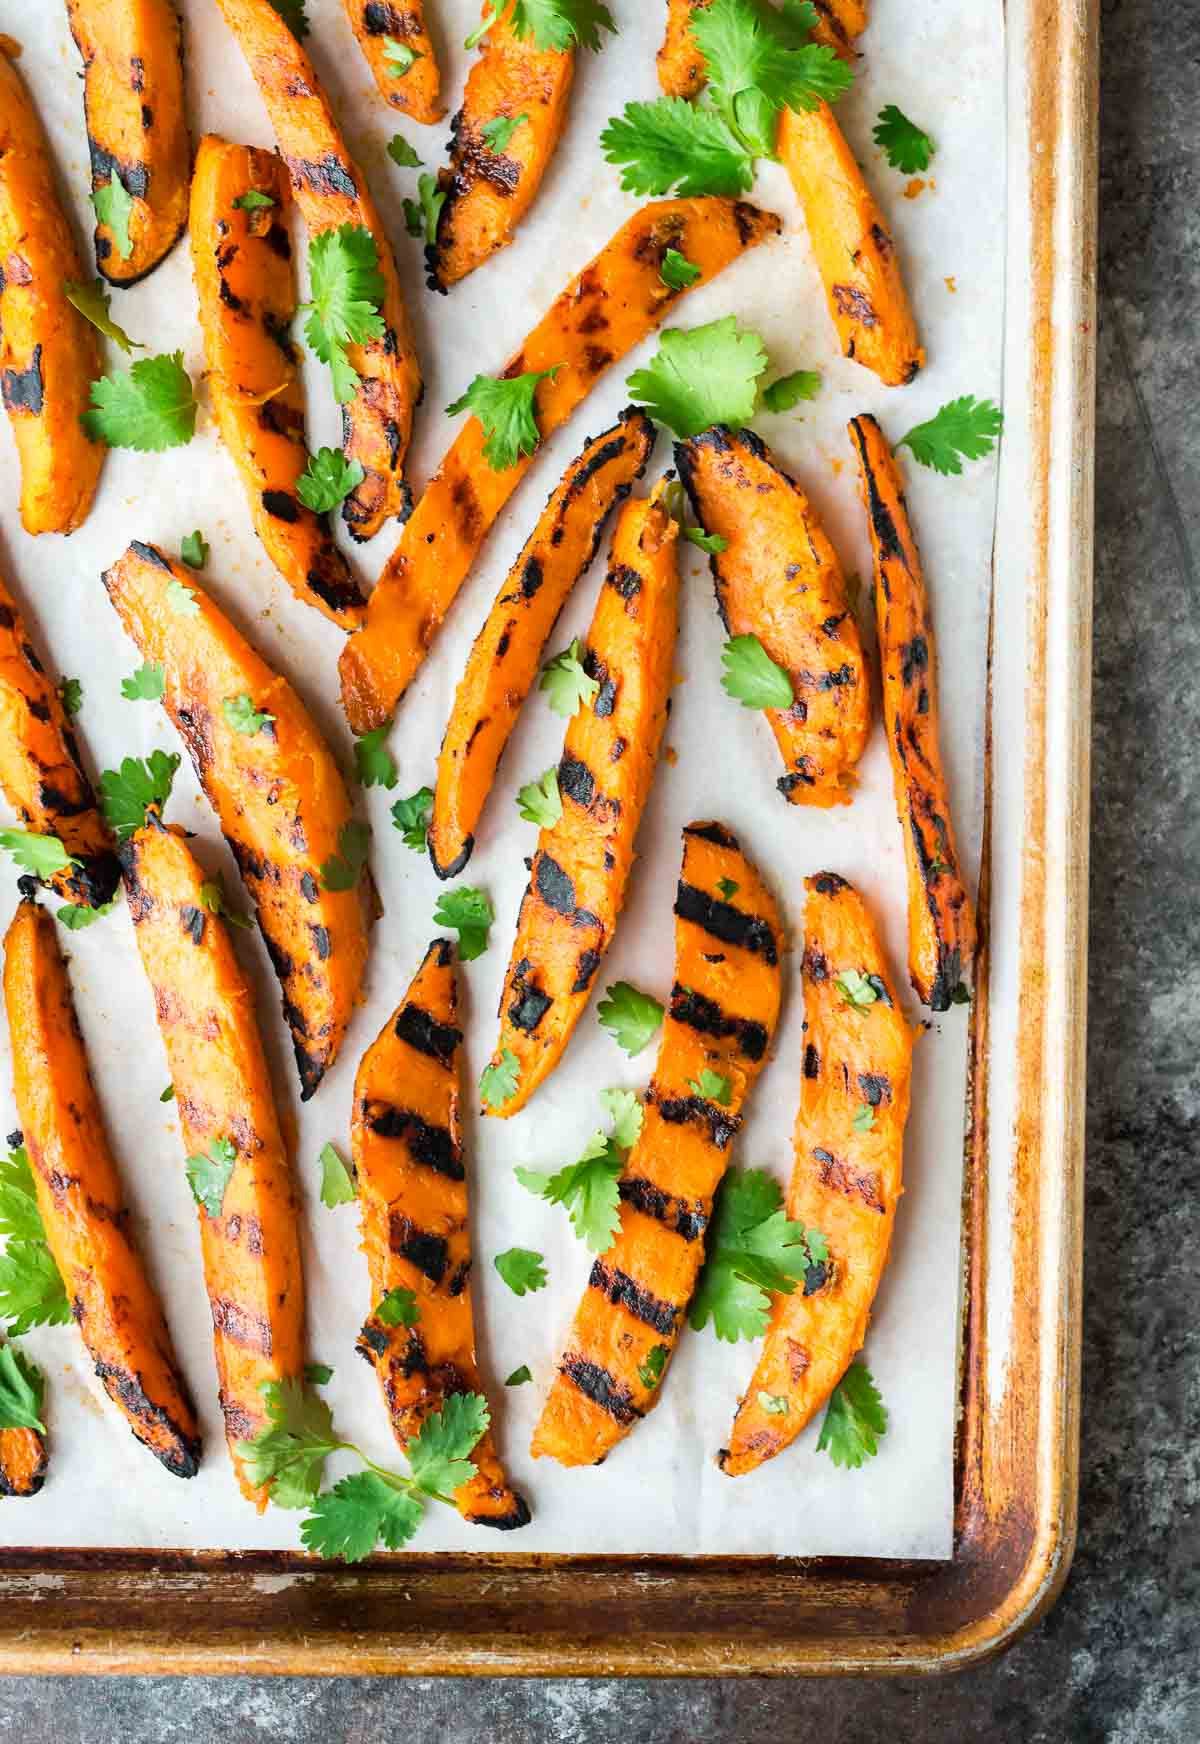 Grill Sweet Potato  Grilled Sweet Potato Fries